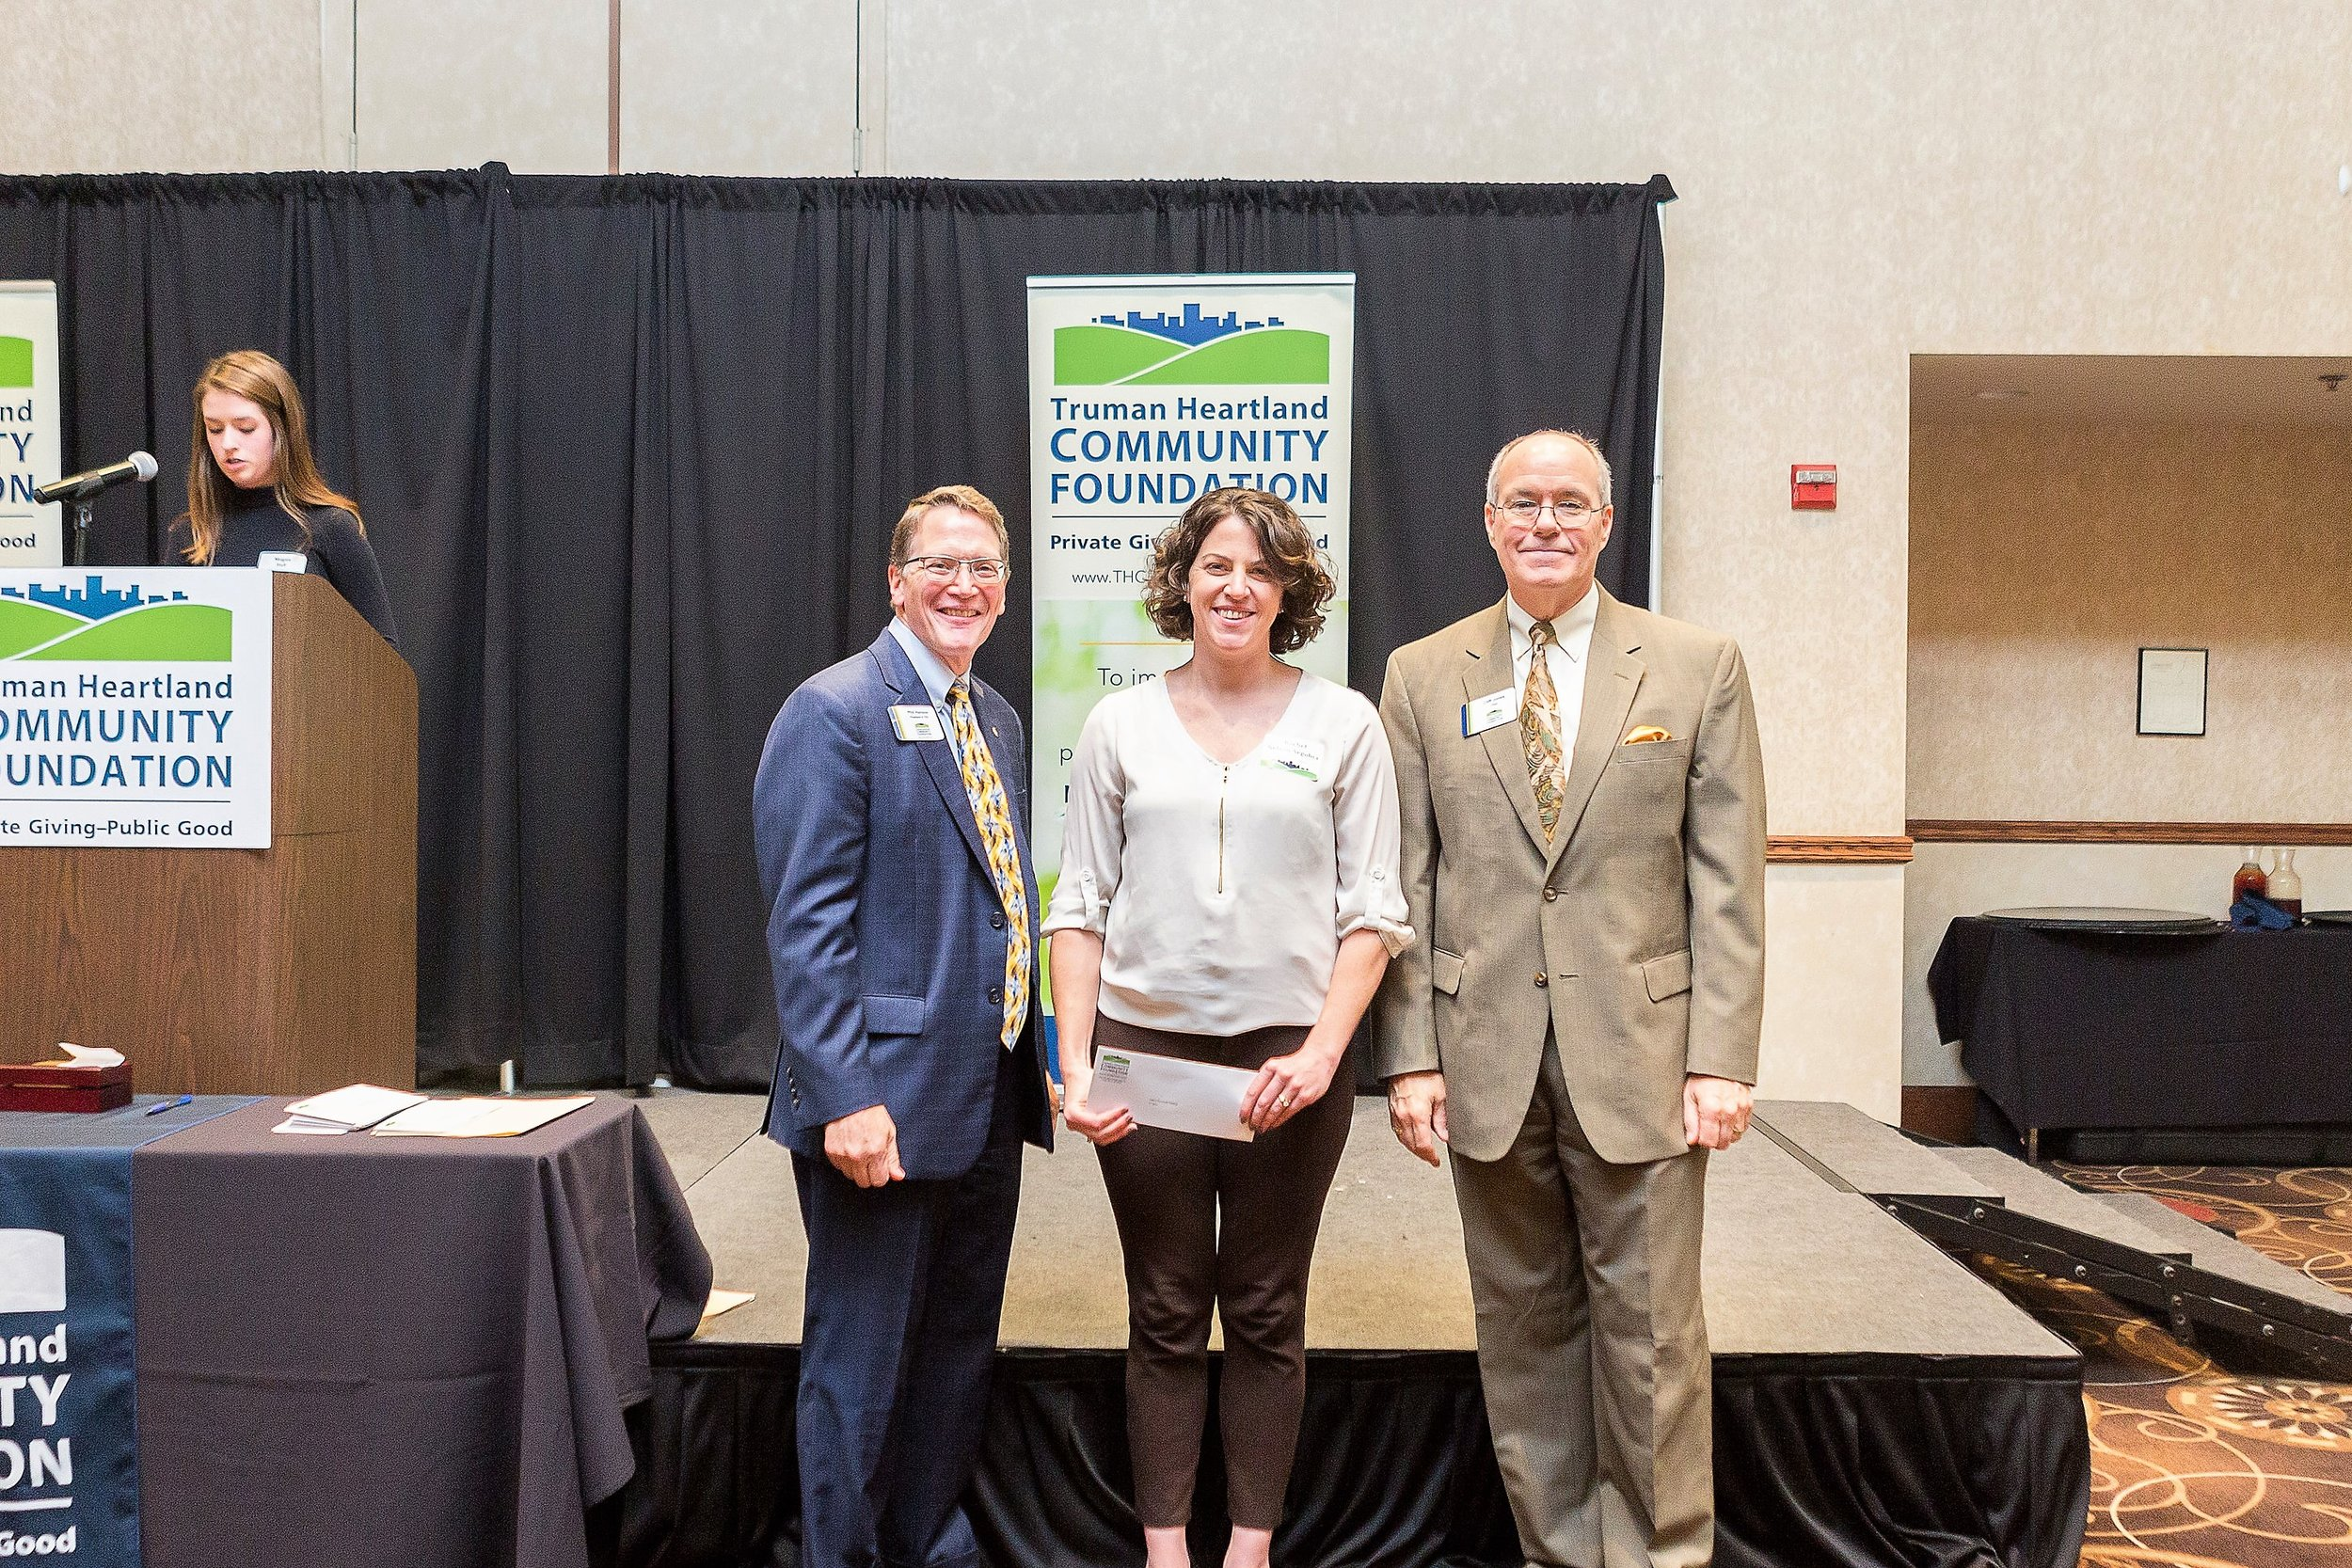 Rachel Segobia, center, accepts two grant checks from Truman Heartland Community Foundation President Phil Hanson and Chairman of the Board Cliff Jones.